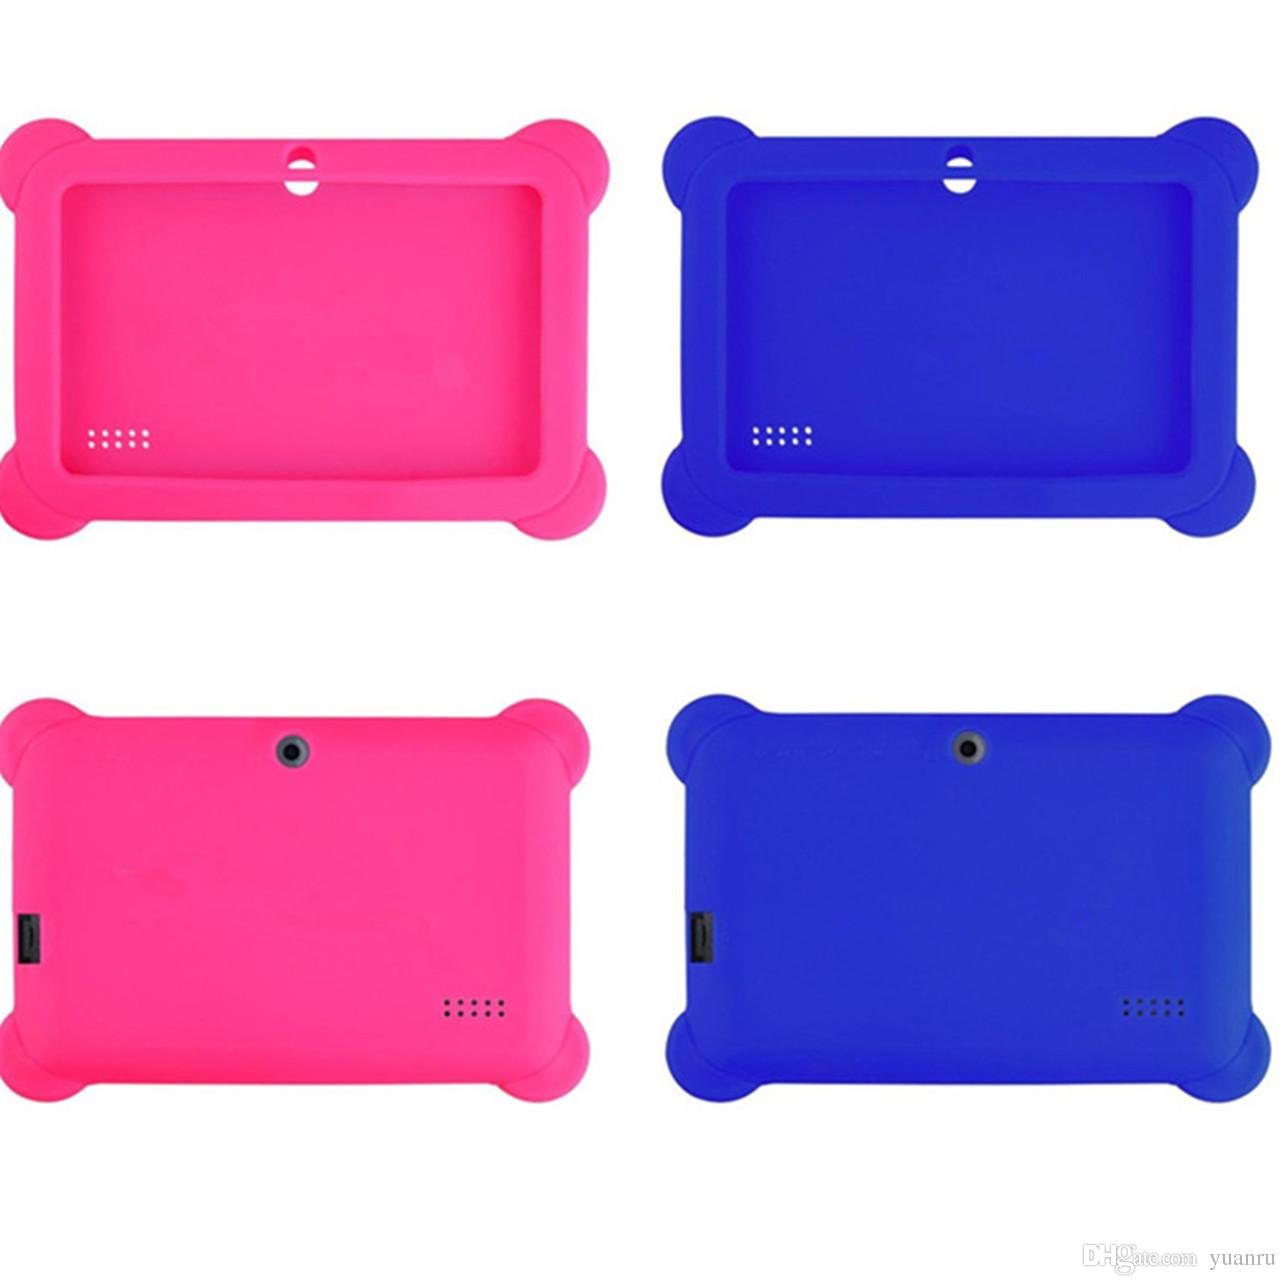 Wholesale android tablet 10 inch - Anti Dust Kids Child Soft Silicone Rubber Gel Case Cover For 7 7 Inch Q88 Q8 A33 A23 Android Tablet Pc Mid Ful Tablet 10 Inch Case 10 Inch Tablet Sleeve